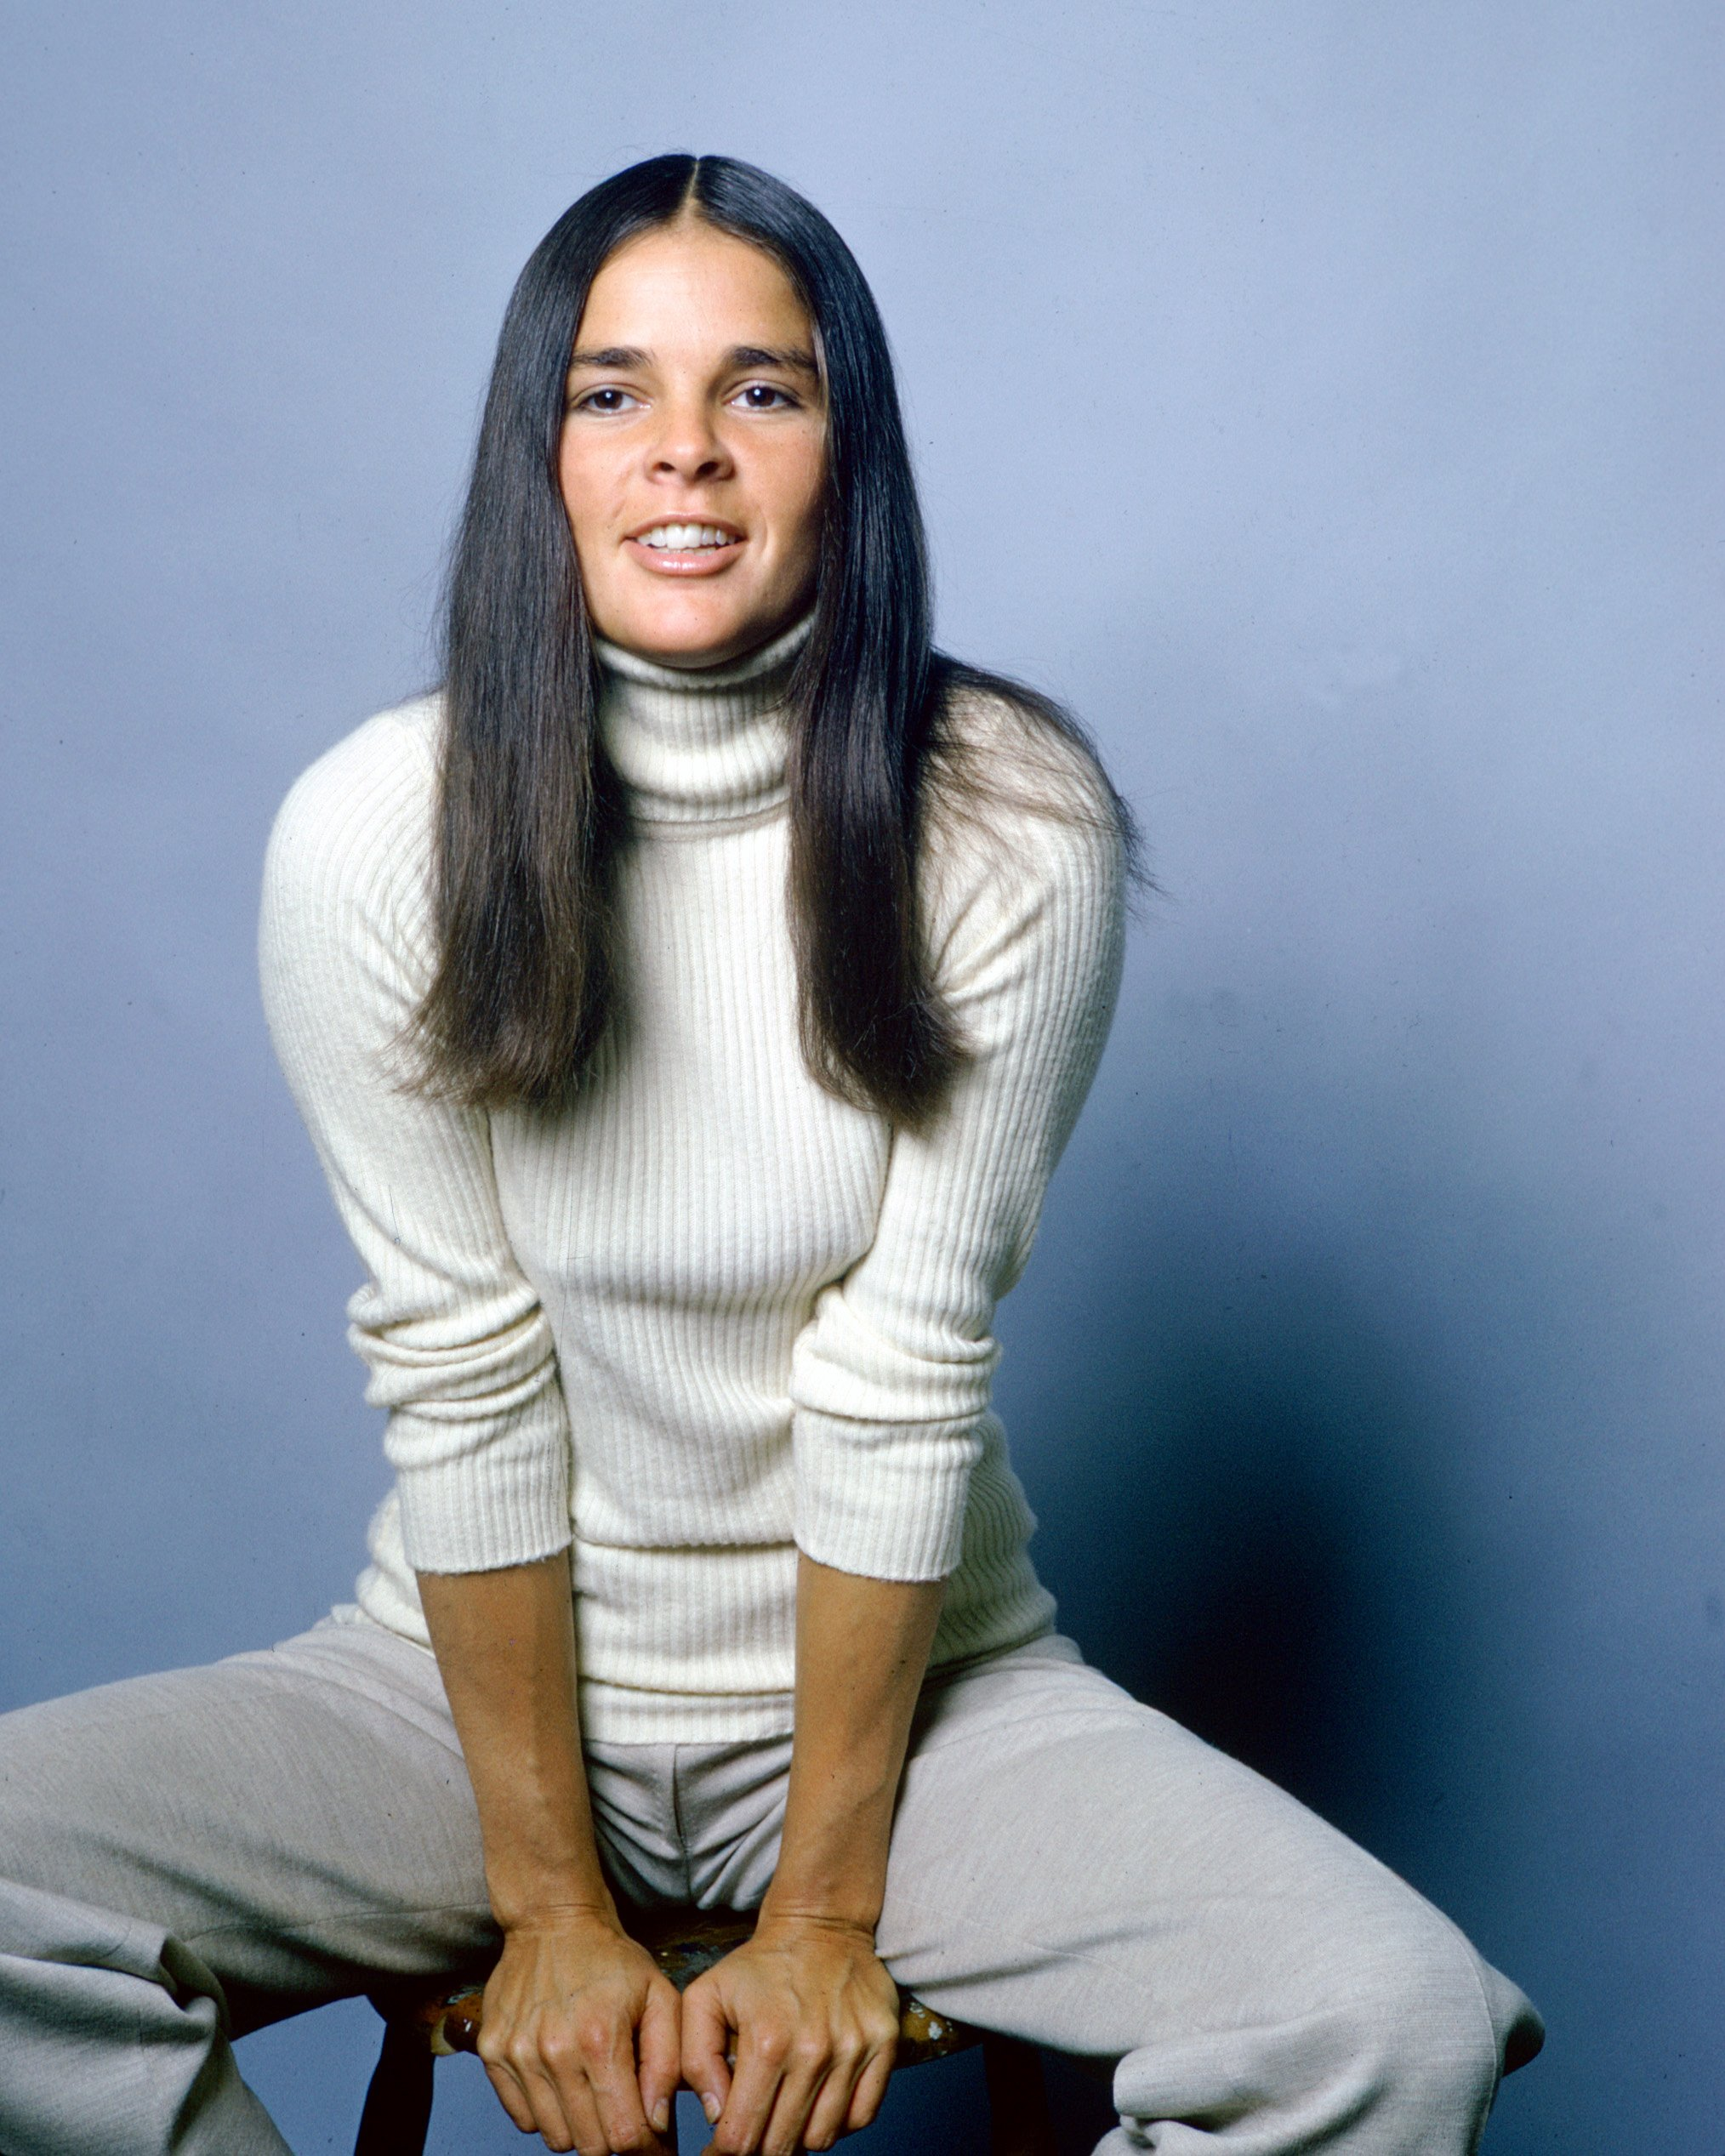 Ali MacGraw, US actress, in a publicity still for the film 'Love Story', USA, circa 1970. The 1970 romance, directed by Arthur Hiller, starred MacGraw as 'Jenny Cavalleri'.  Photo: Getty Images